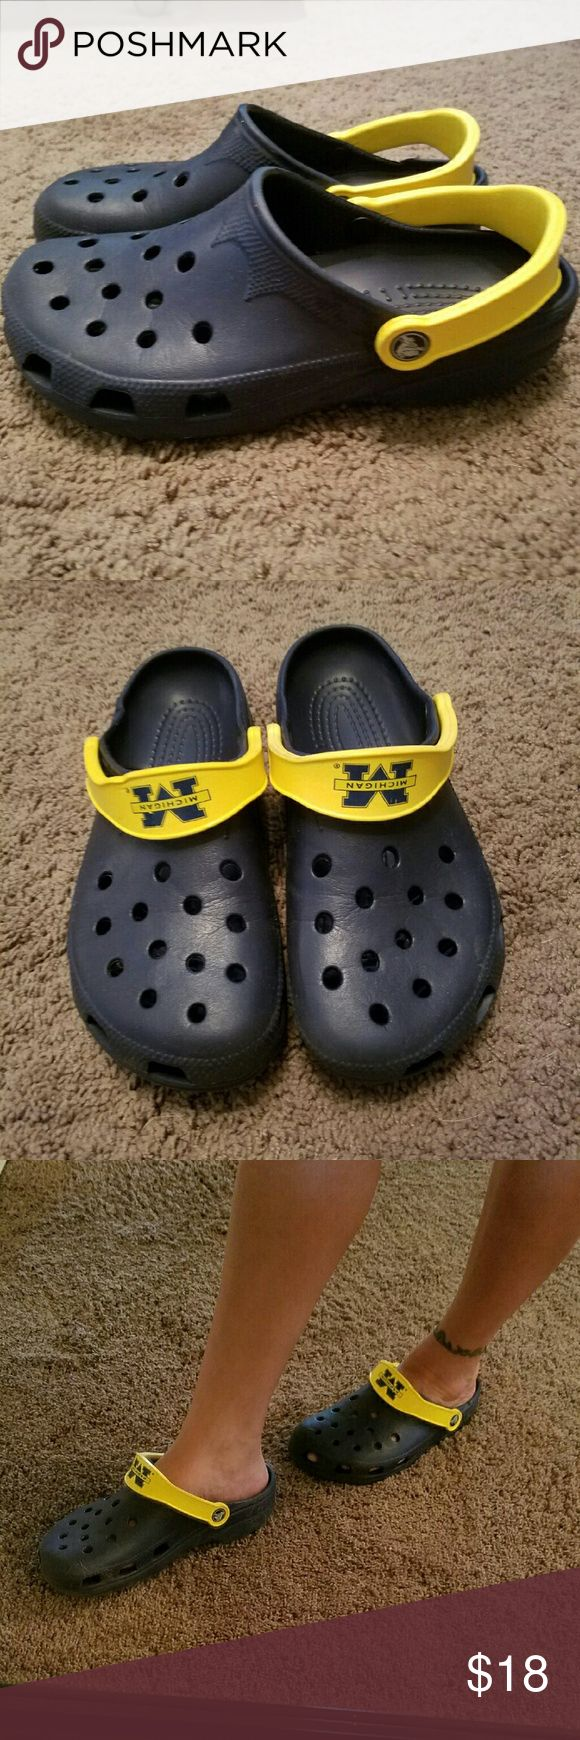 Crocs women's size 8 University of Michigan maize and blue women's crocs. These shoes have only been worn a couple of times. crocs Shoes